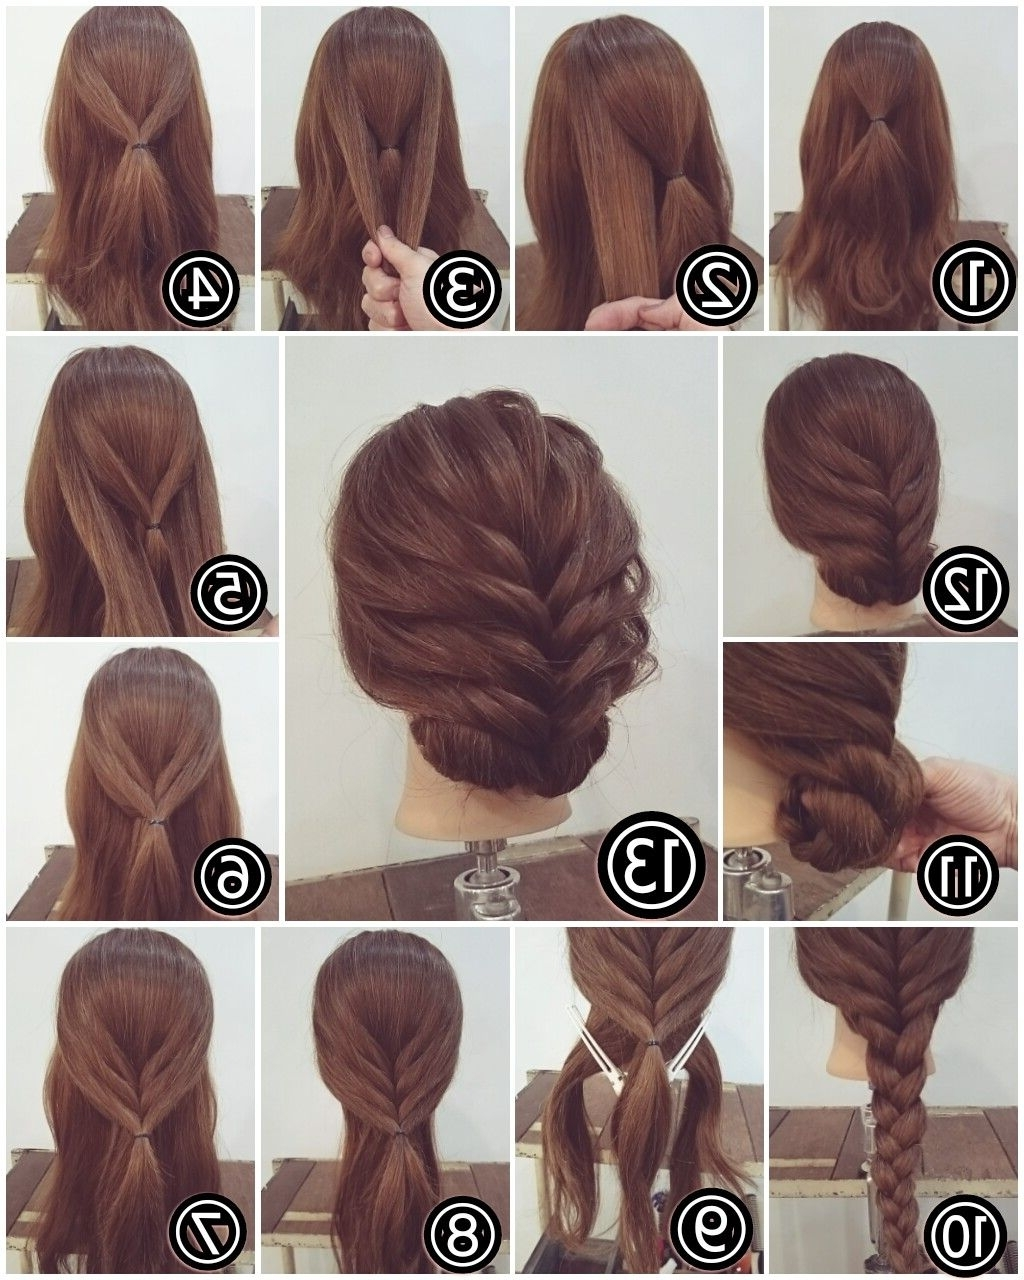 Pinjen Reen On Hair | Pinterest | Updo, Hair Style And Makeup Throughout Easy Hair Updos For Long Hair (View 11 of 15)